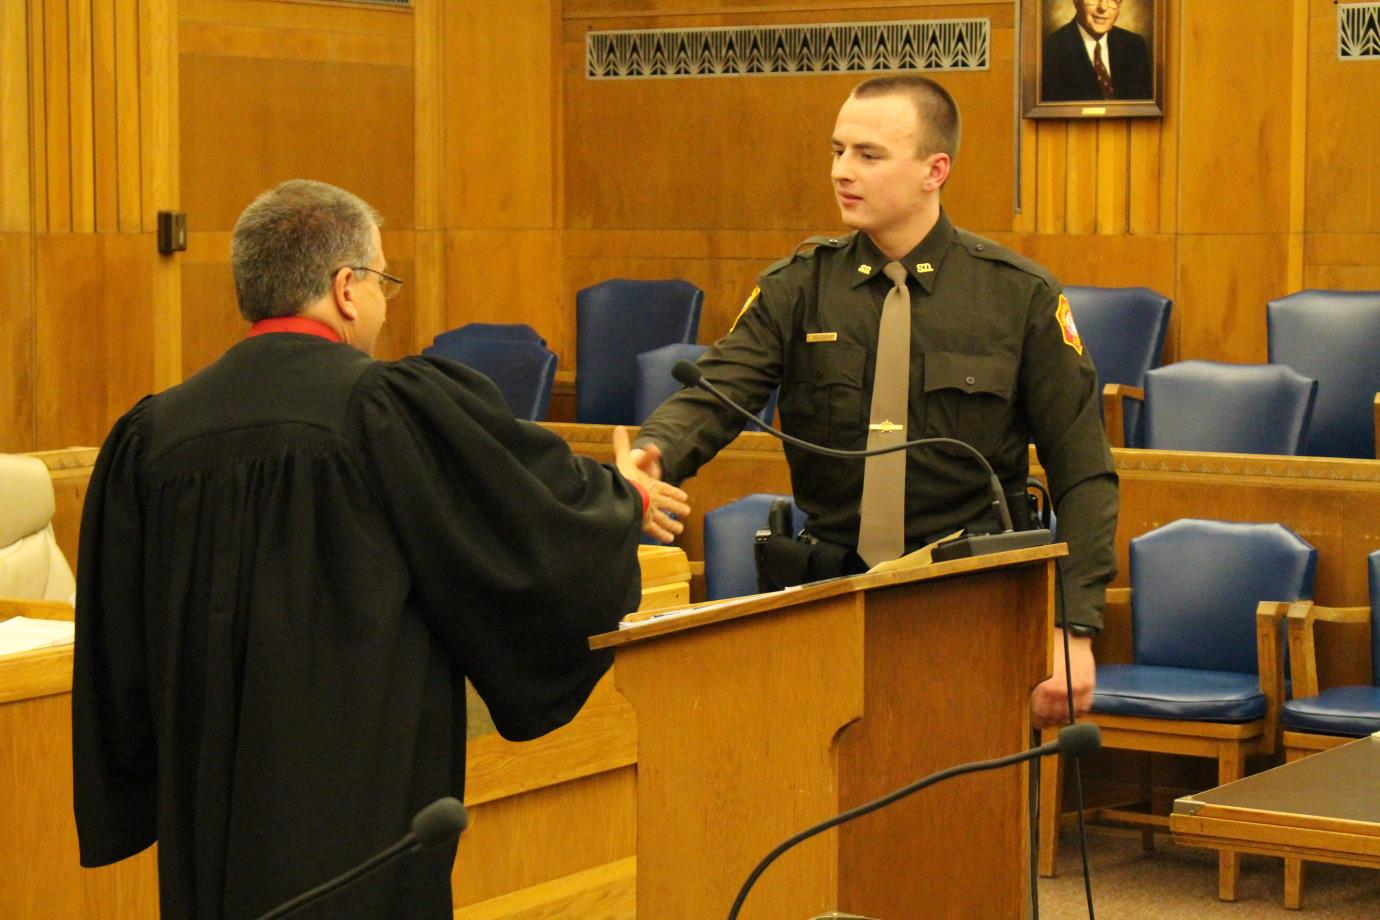 Handshake in the courtroom